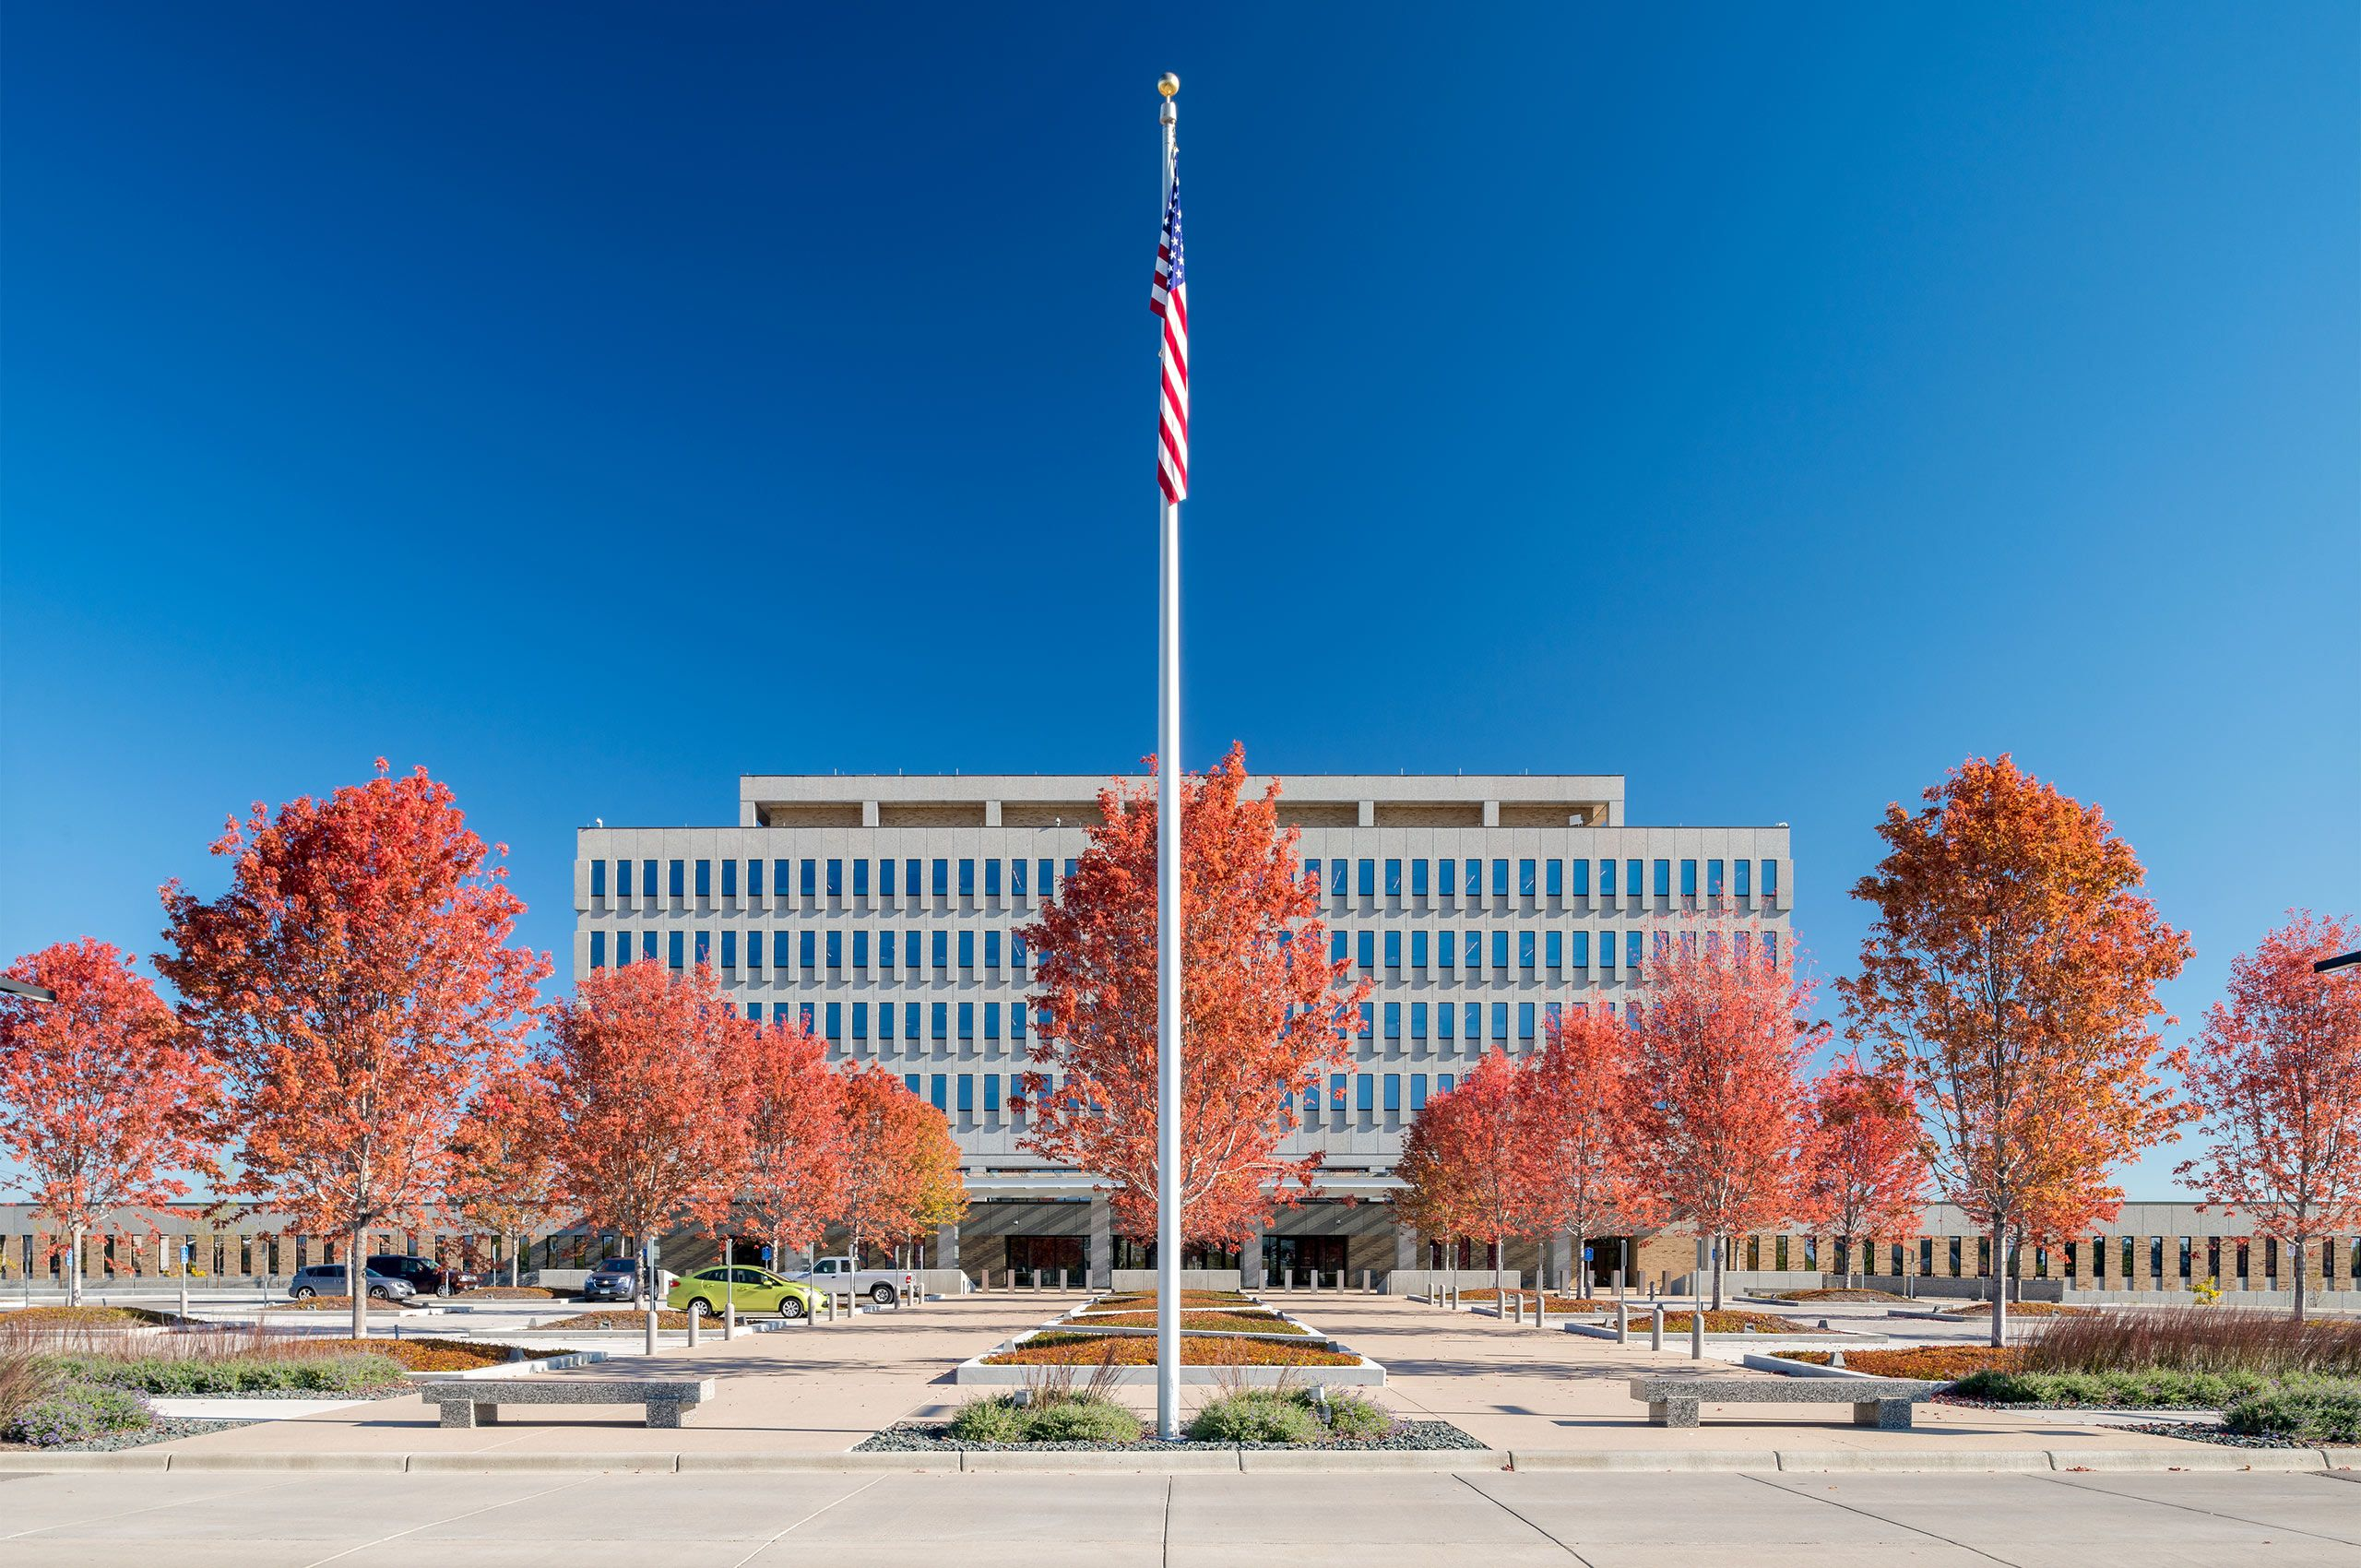 BISHOP HENRY WHIPPLE FEDERAL BUILDING